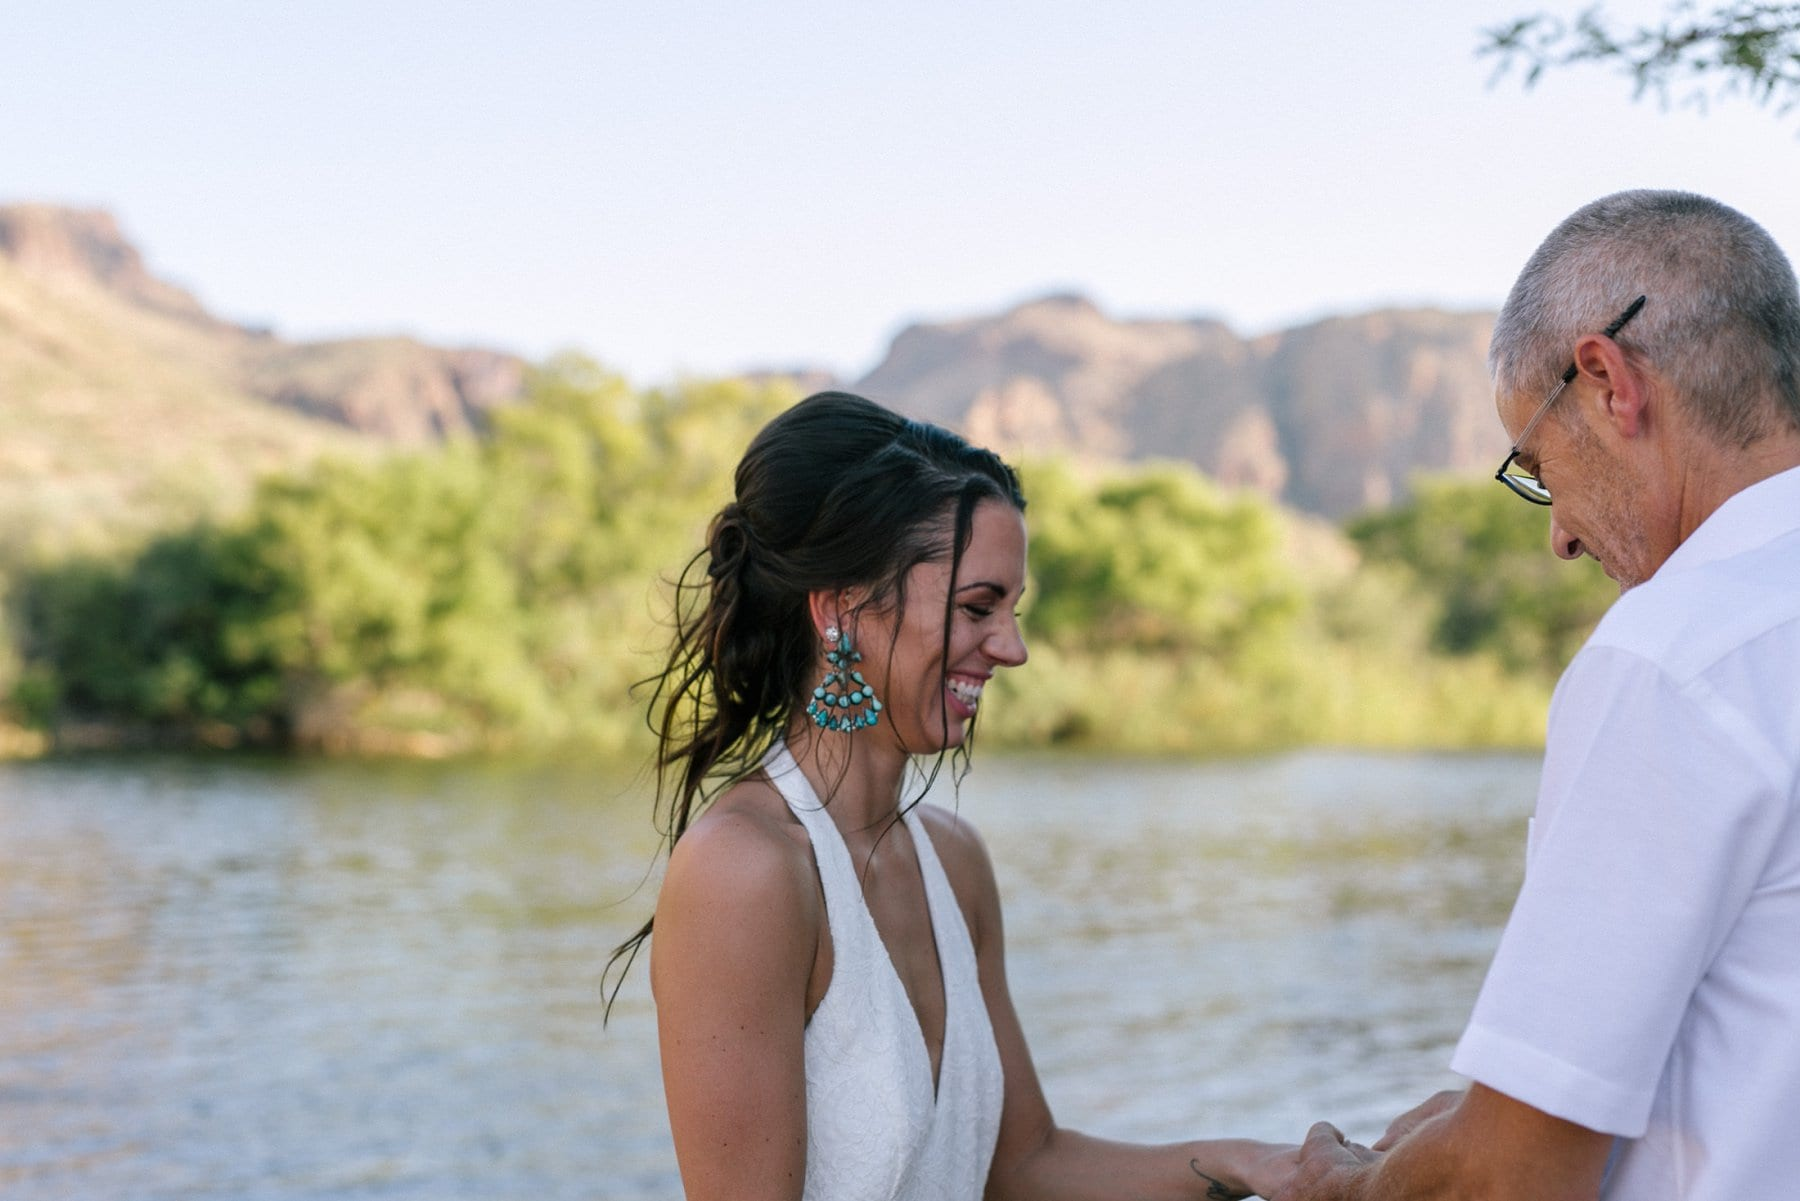 Arizona outdoor elopement at Salt River exchanging rings